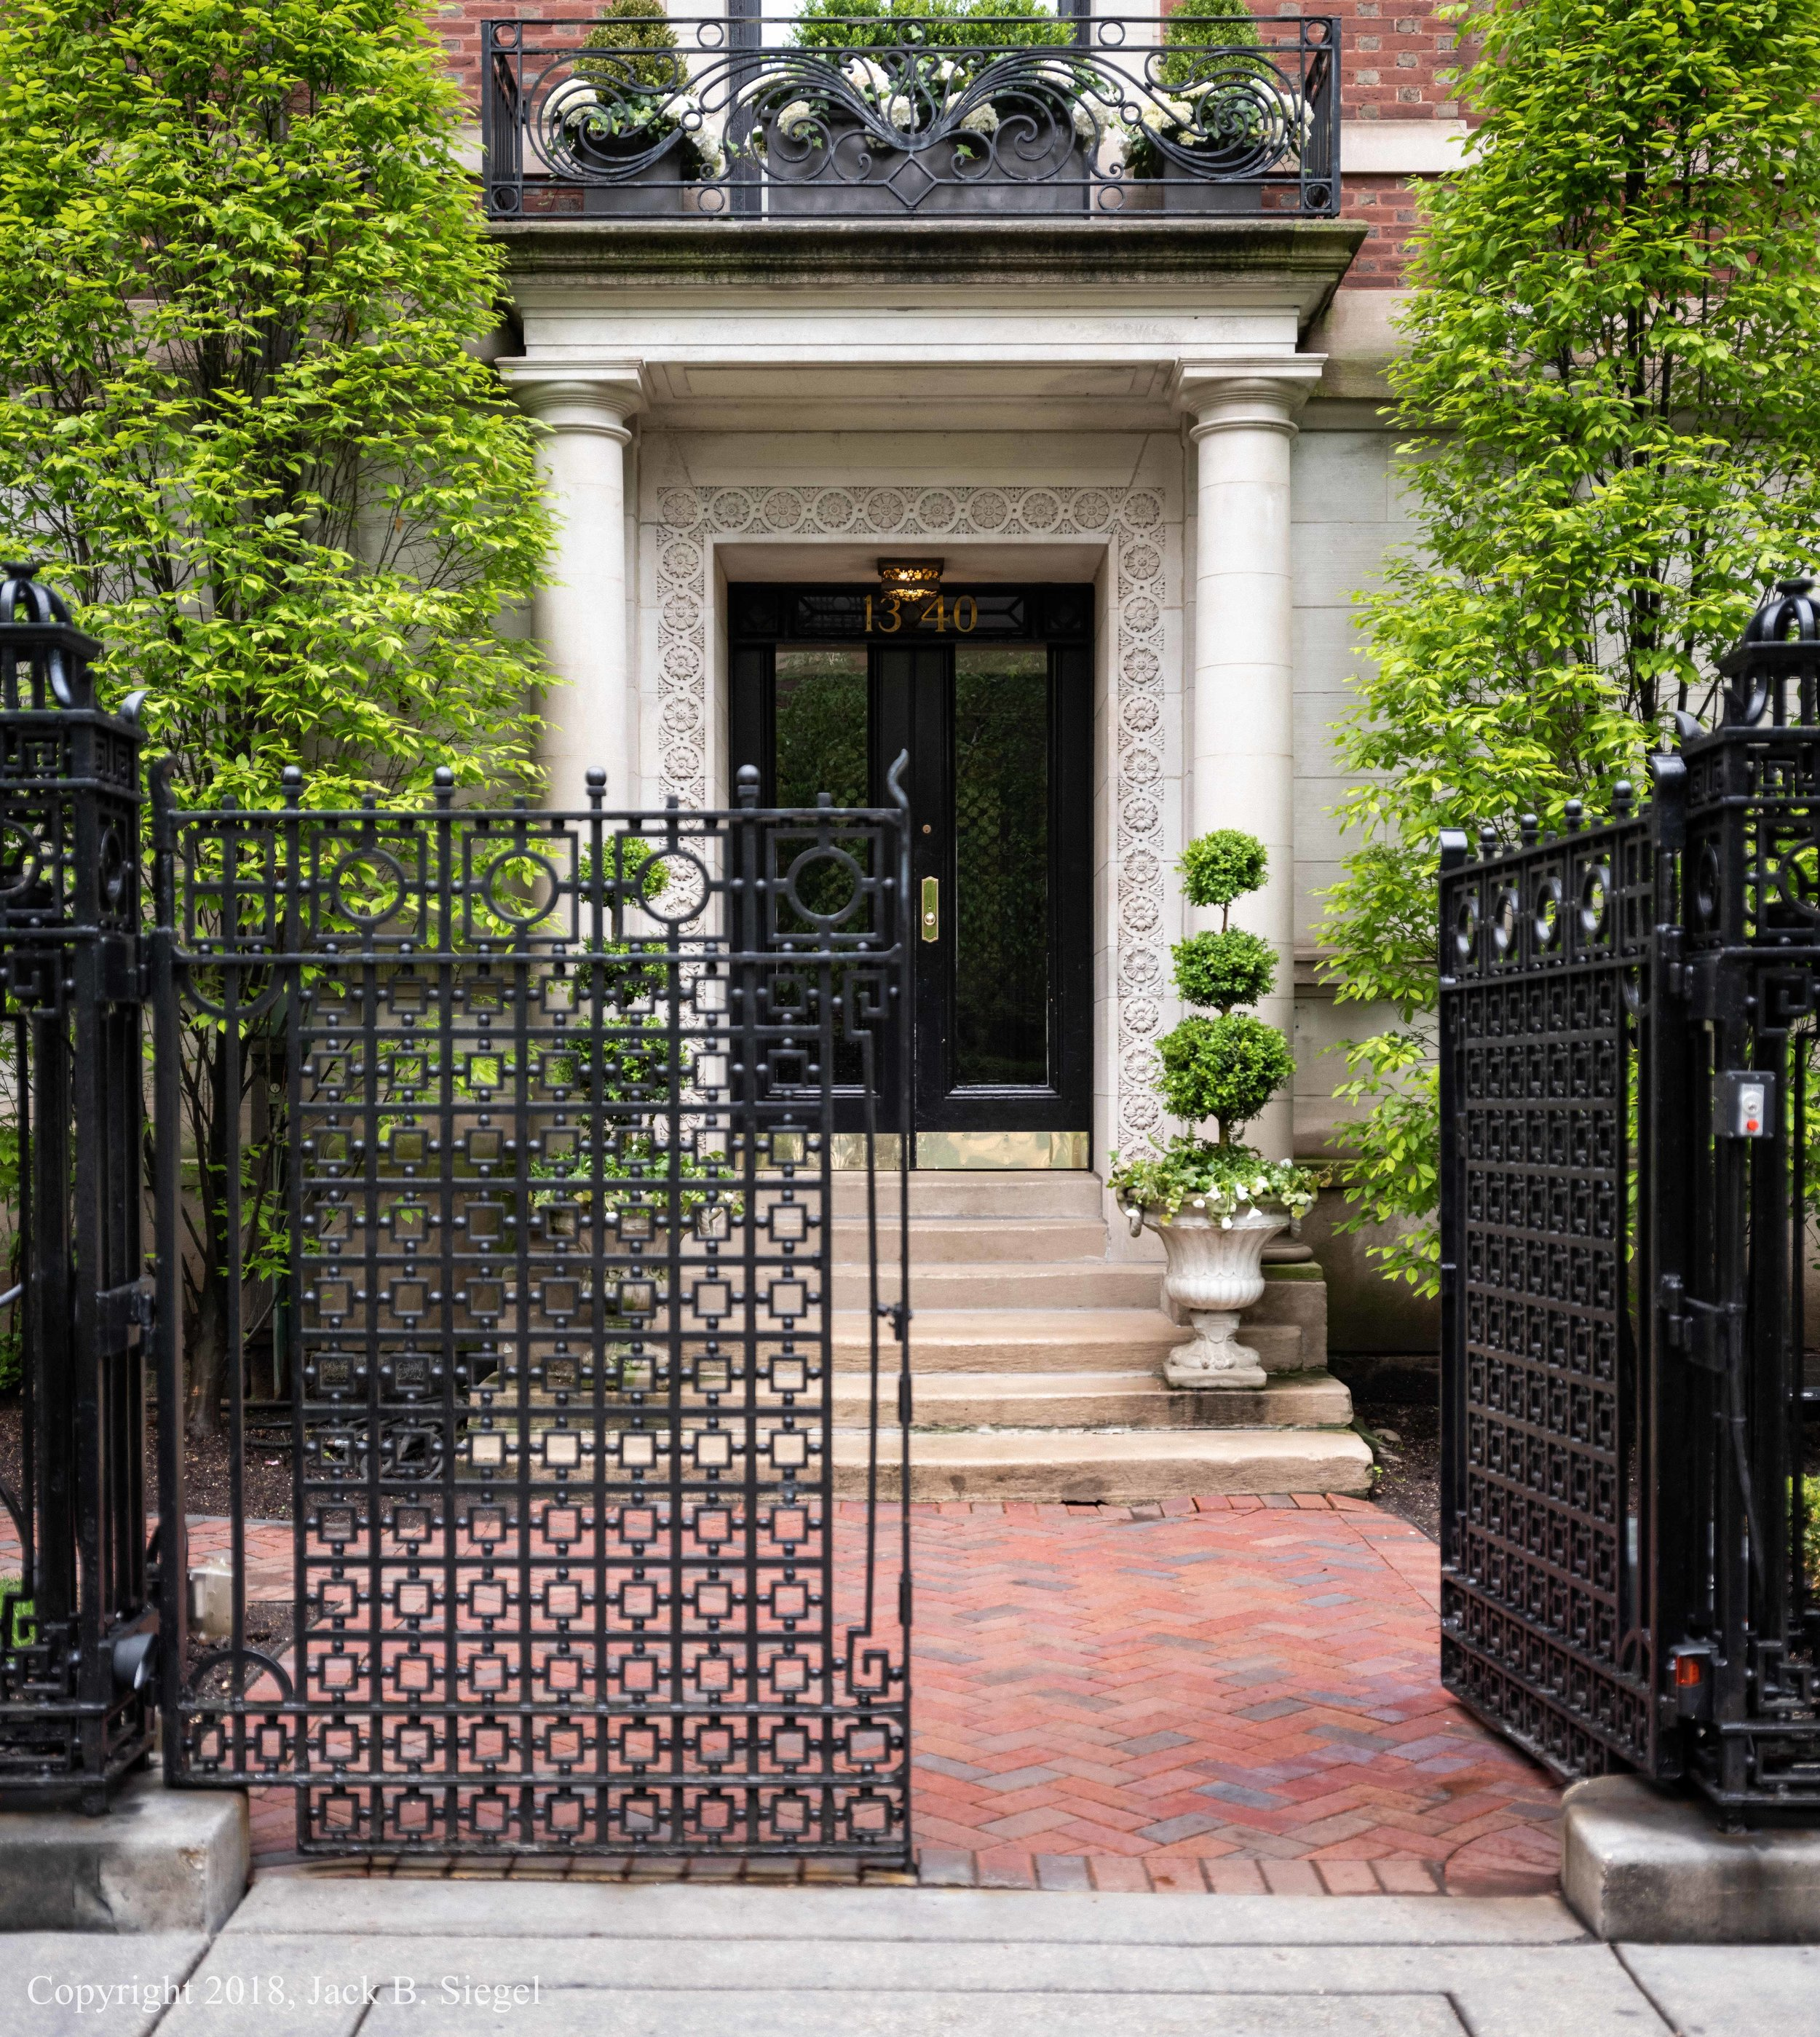 _DSF9092_Copyright_Entrance to the Former Playboy Mansion.jpg